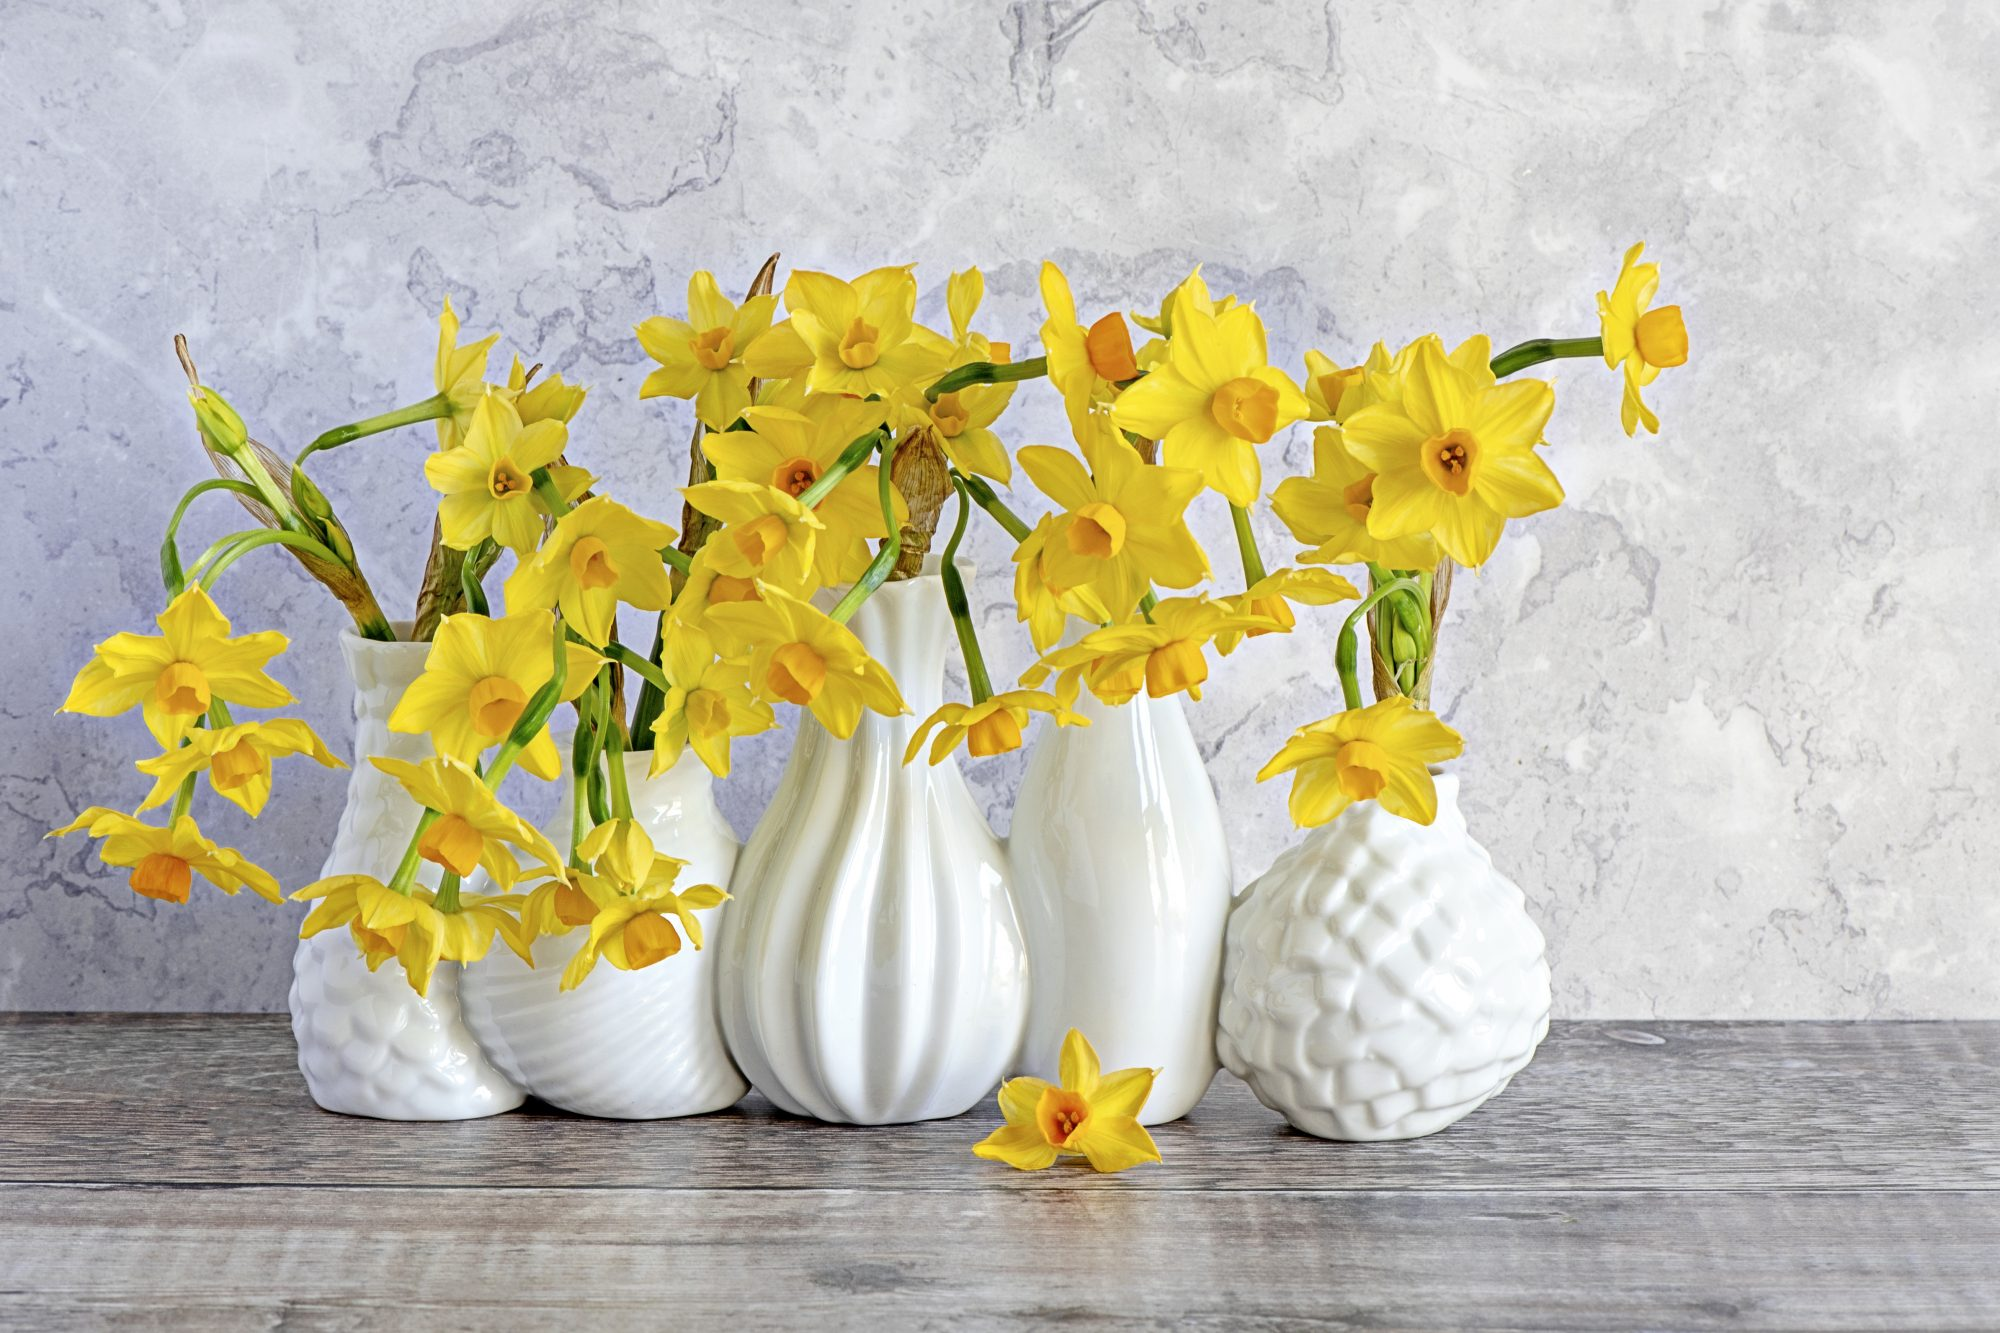 yellow daffodils bouquets in white vases